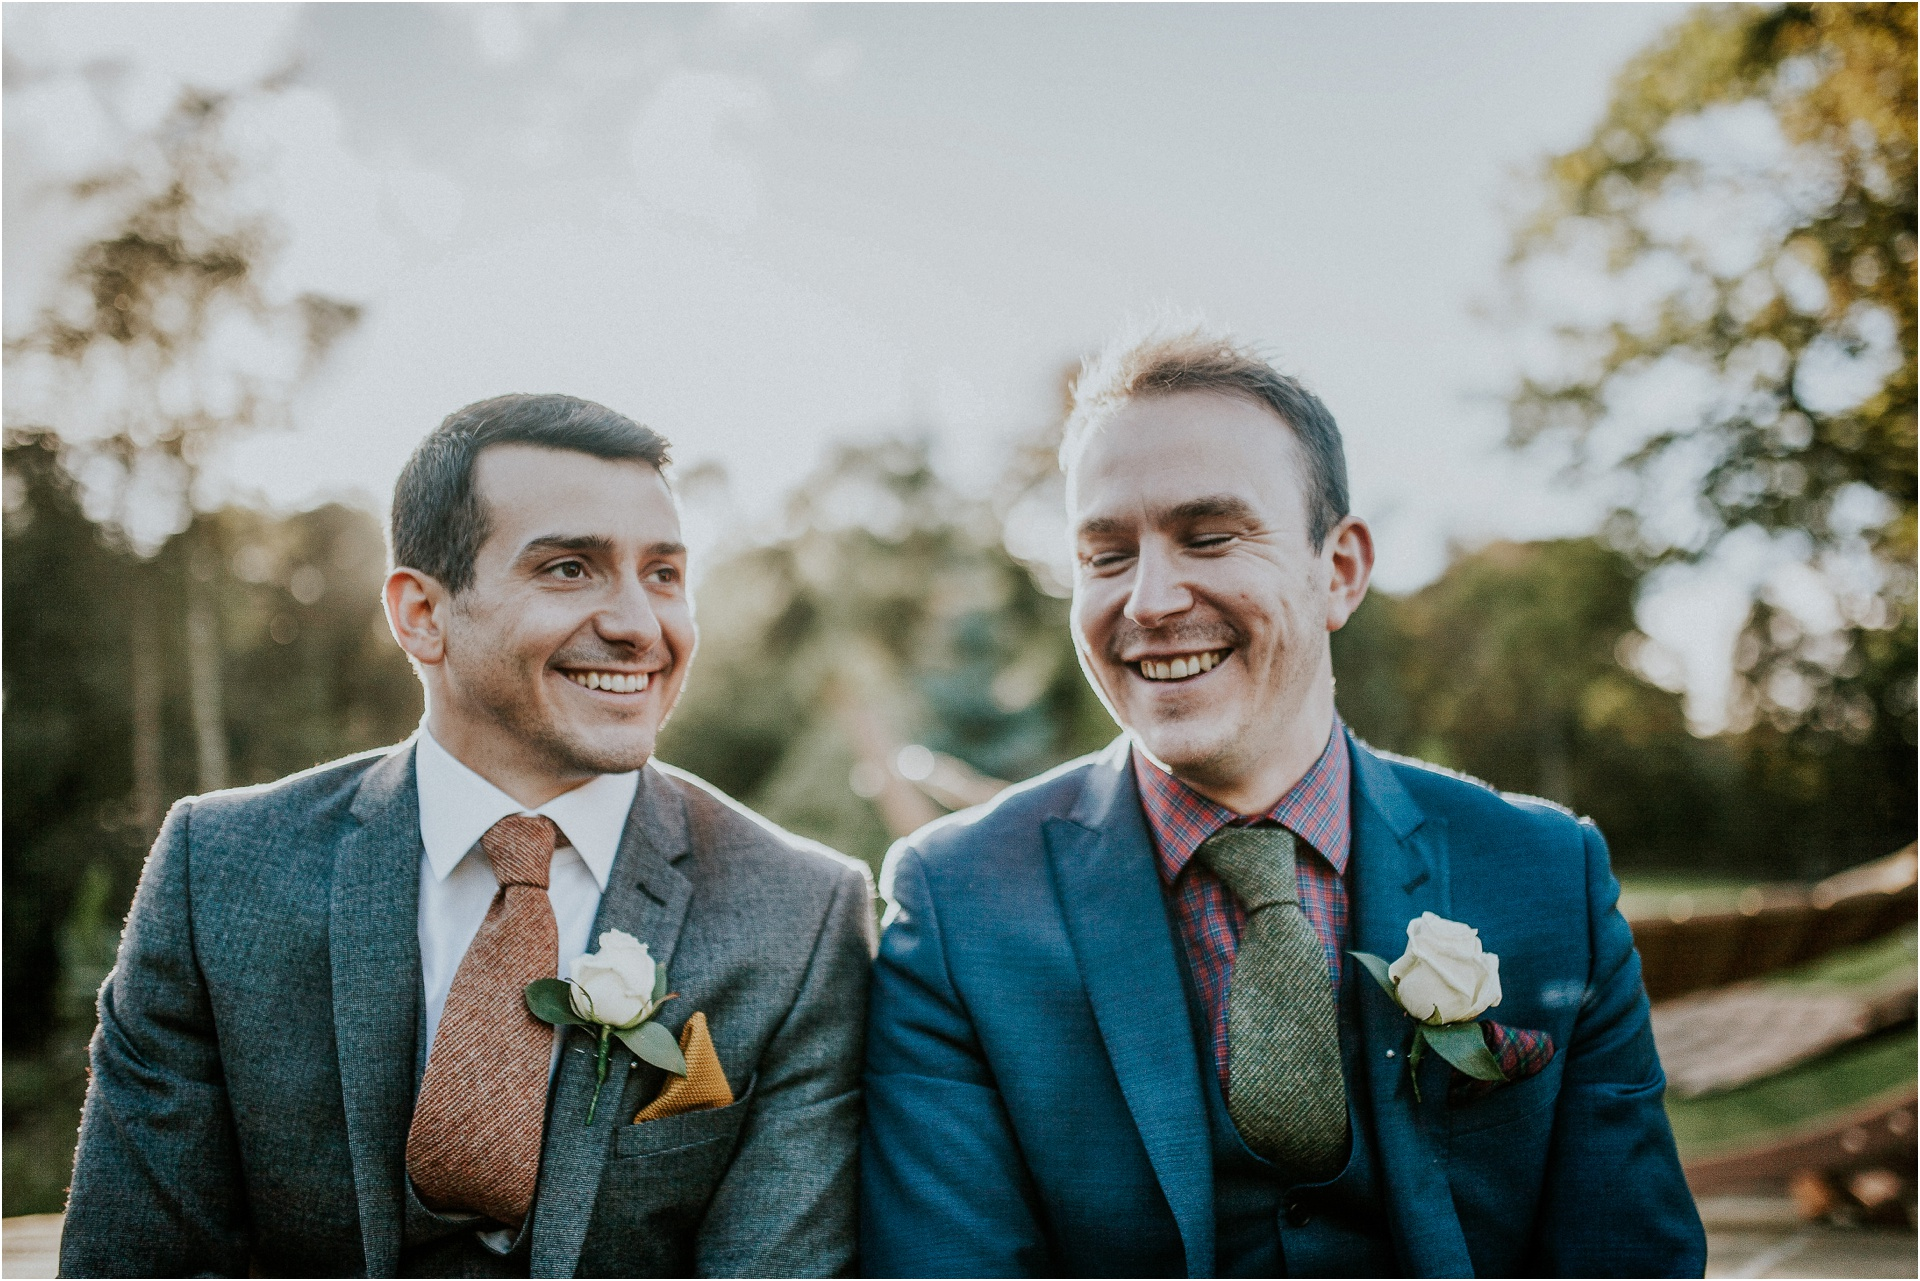 Beautiful same sex wedding at Carr Hall Castle in Yorkshire, documentary wedding photography, autumn wedding, Carr Hall Castle,, Carr Hall Castle Wedding, Yorkshire Wedding photographer, same sex wedding photographer